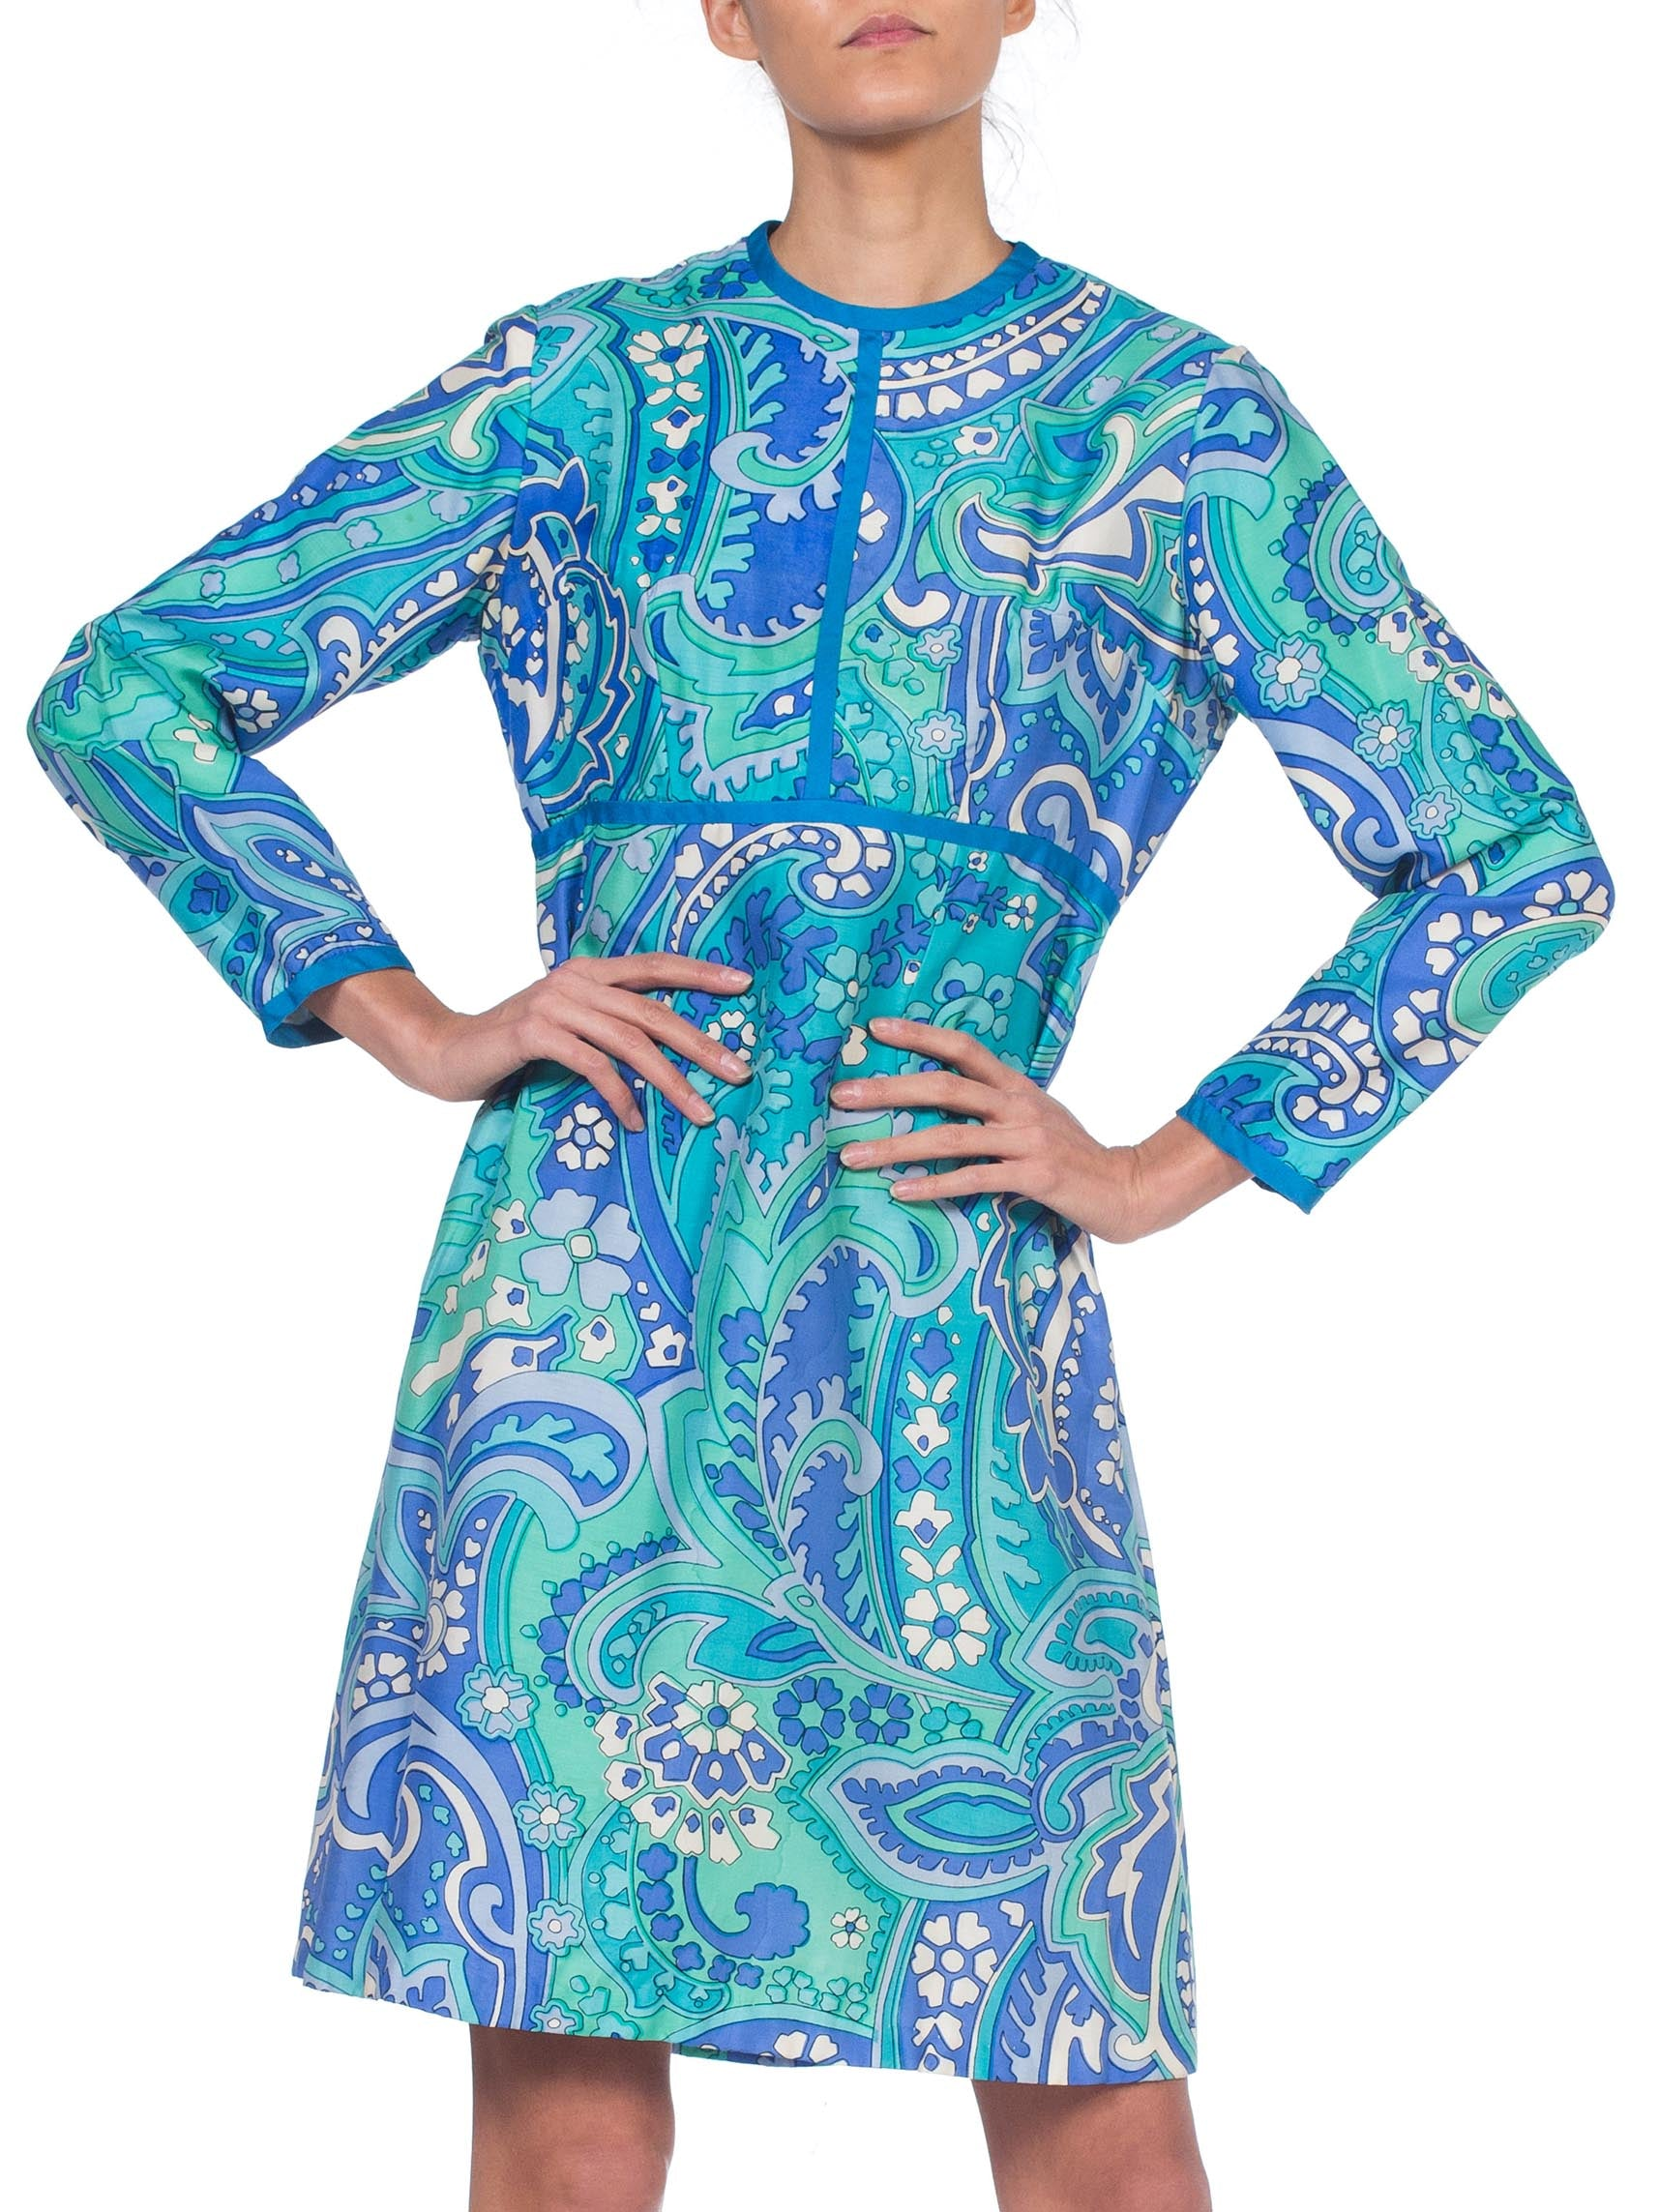 1960S I. MAGNIN Aqua  Psychedelic Silk Empire Waist Mod Long Sleeve Dress